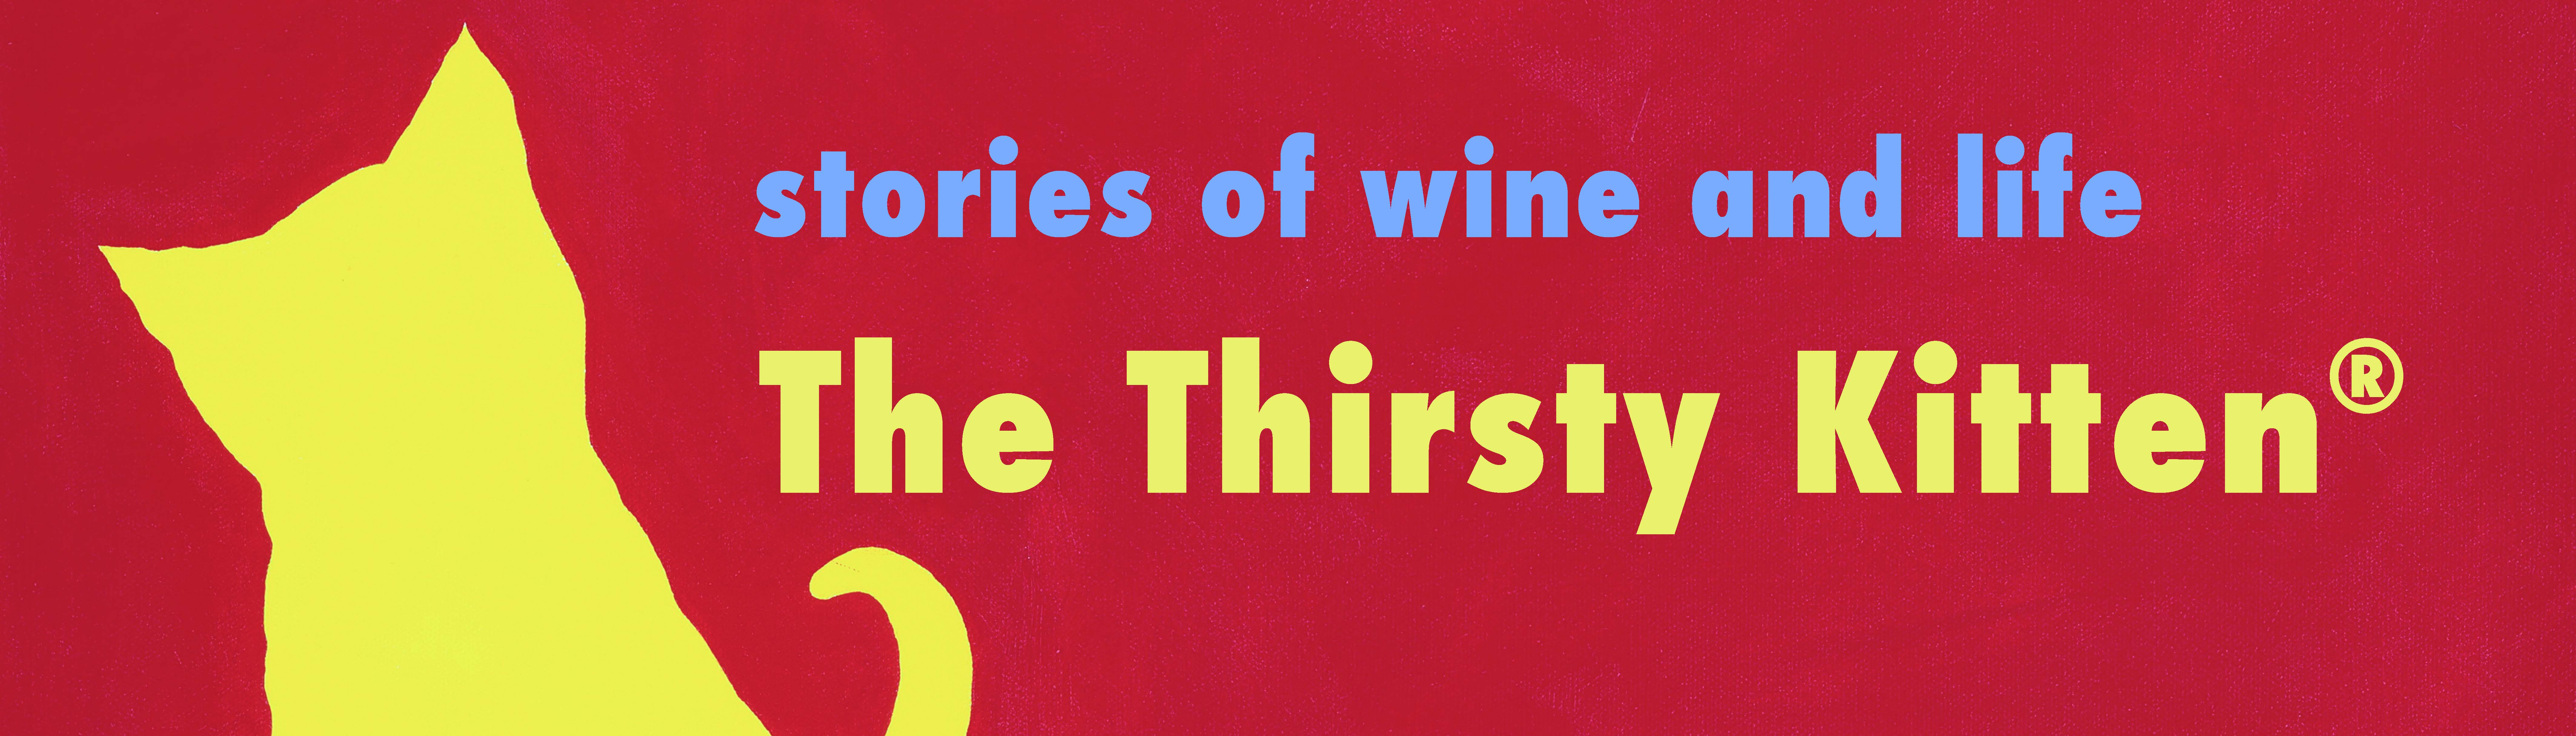 The Thirsty Kitten | stories about wine and life